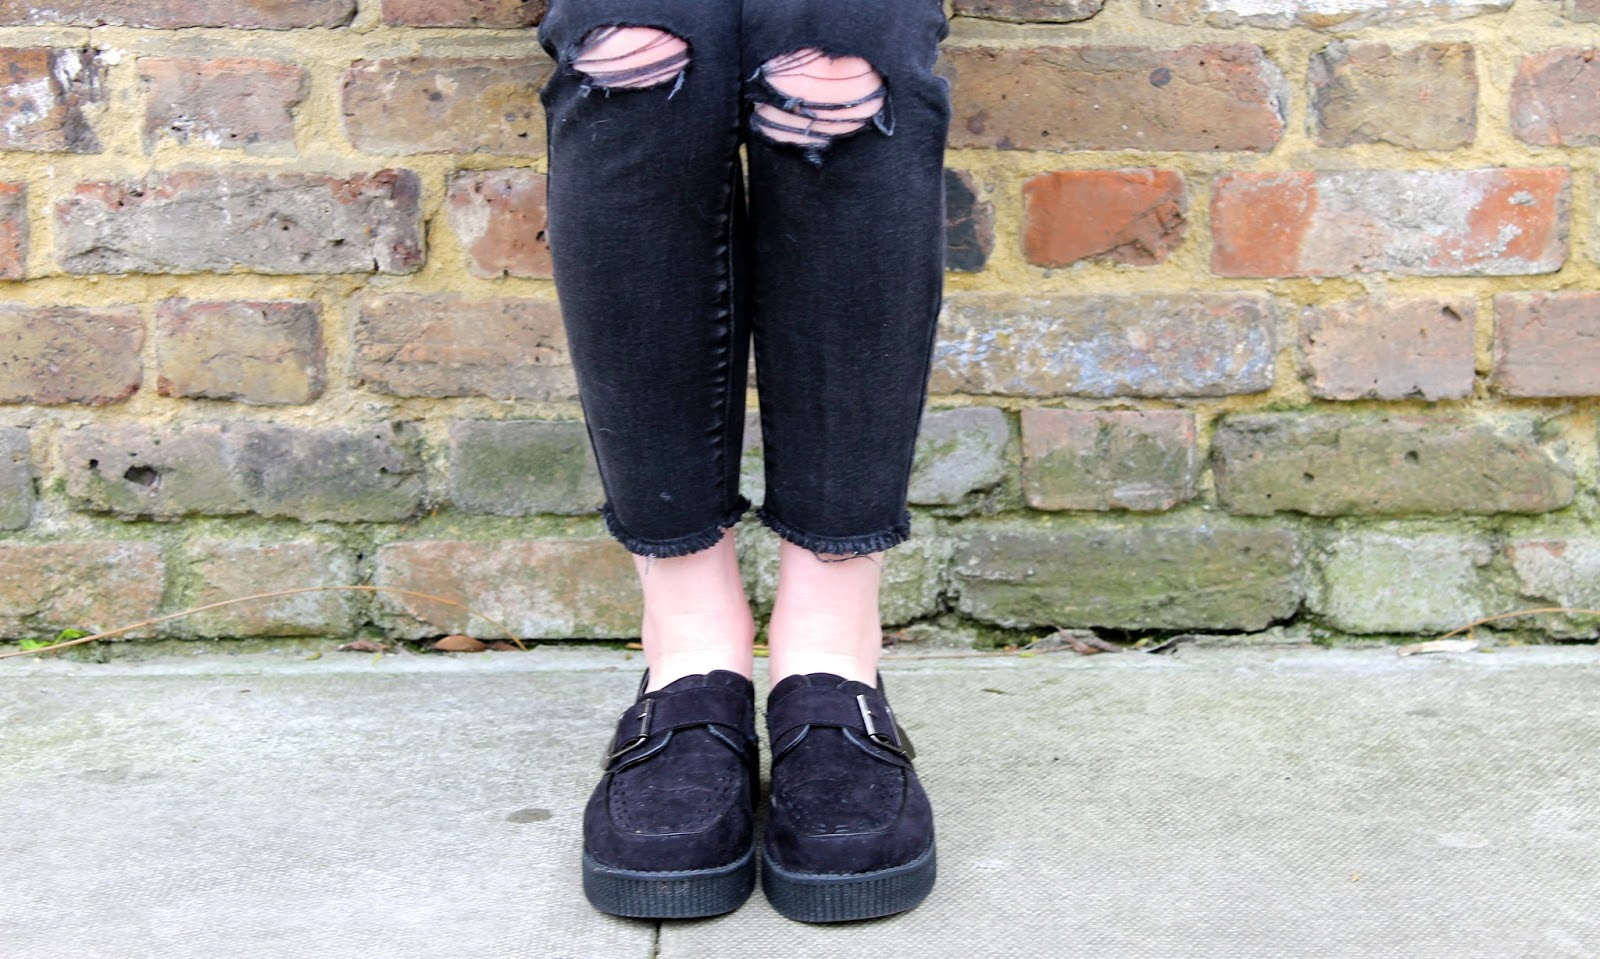 bec boop ripped jeans creepers